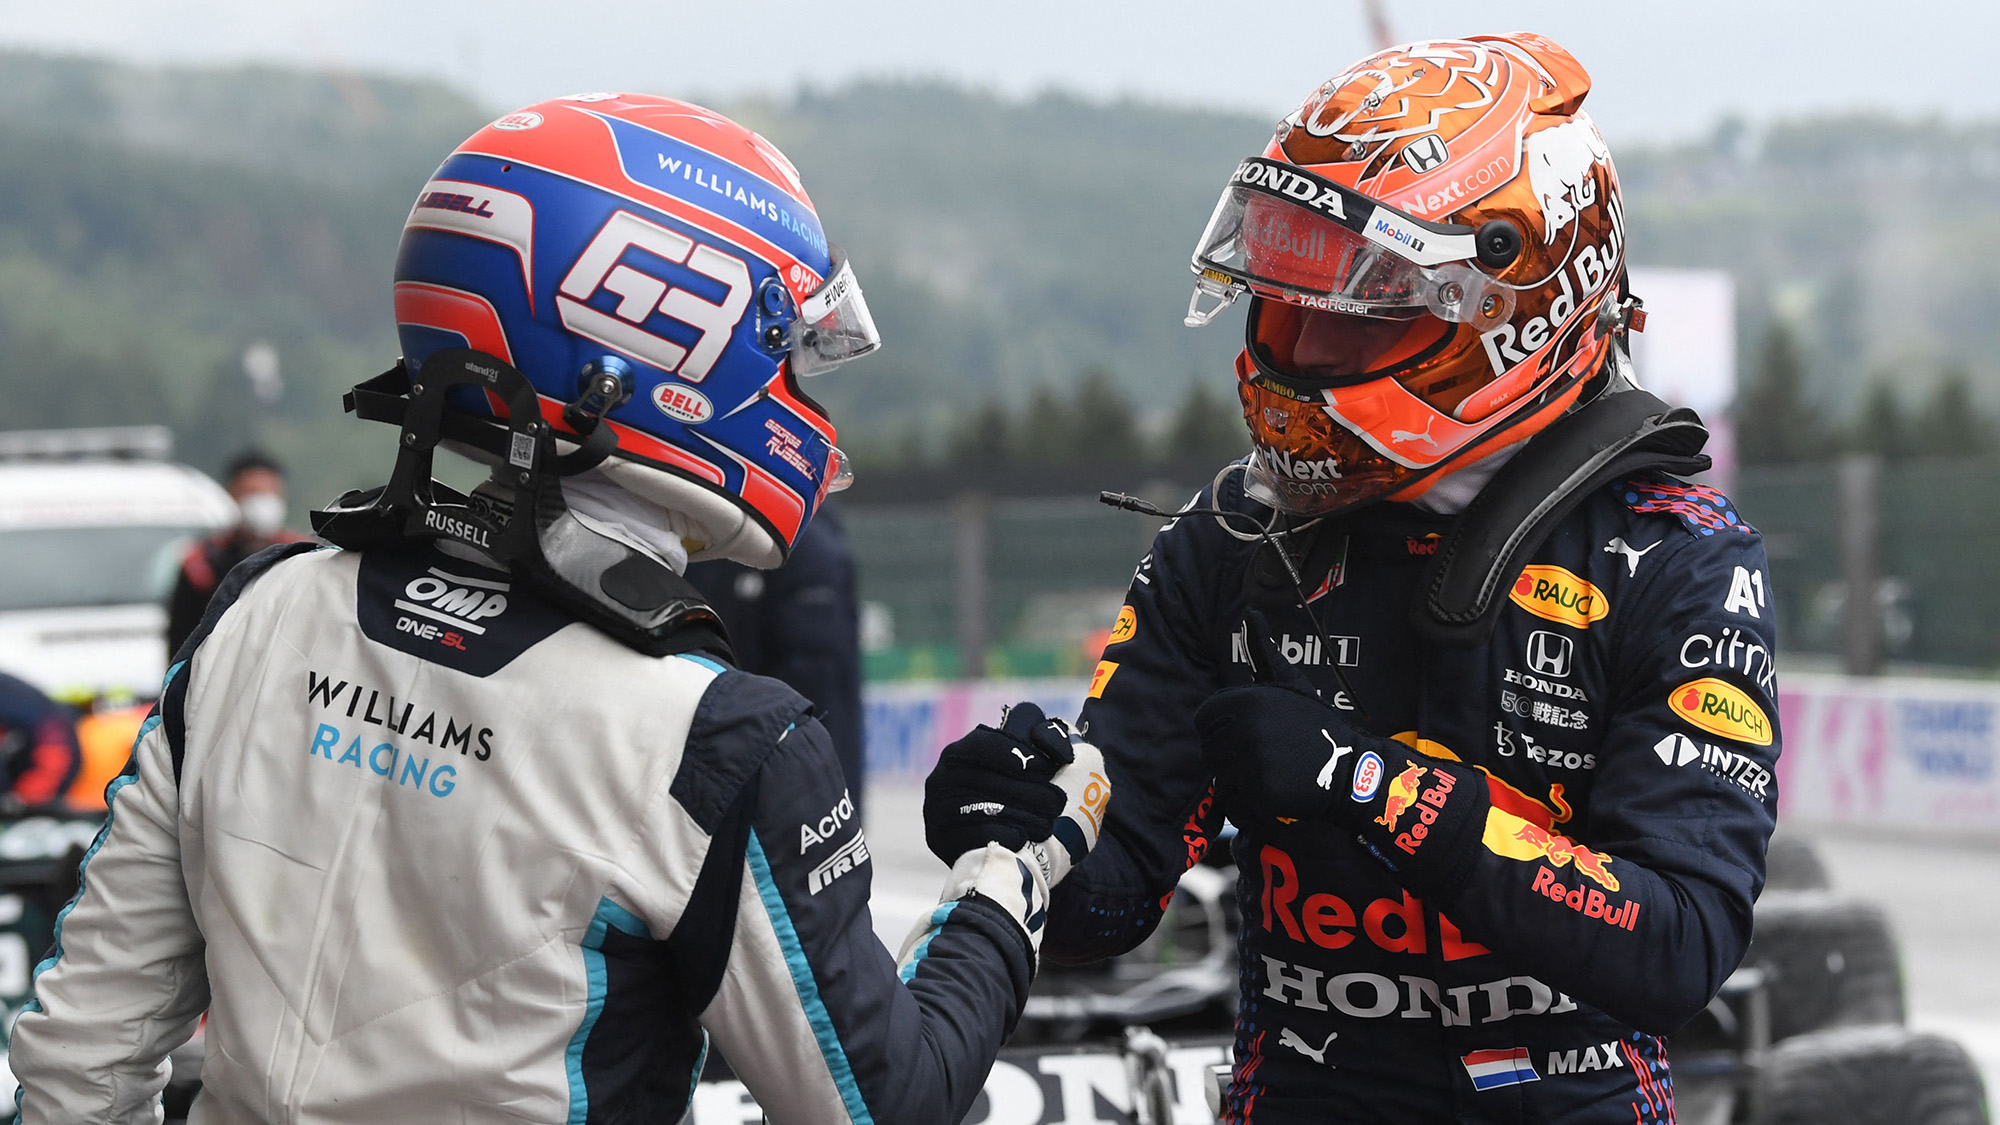 George Russell and Max Verstappen shake hands after 2021 Belgian Grand Prix qualifying